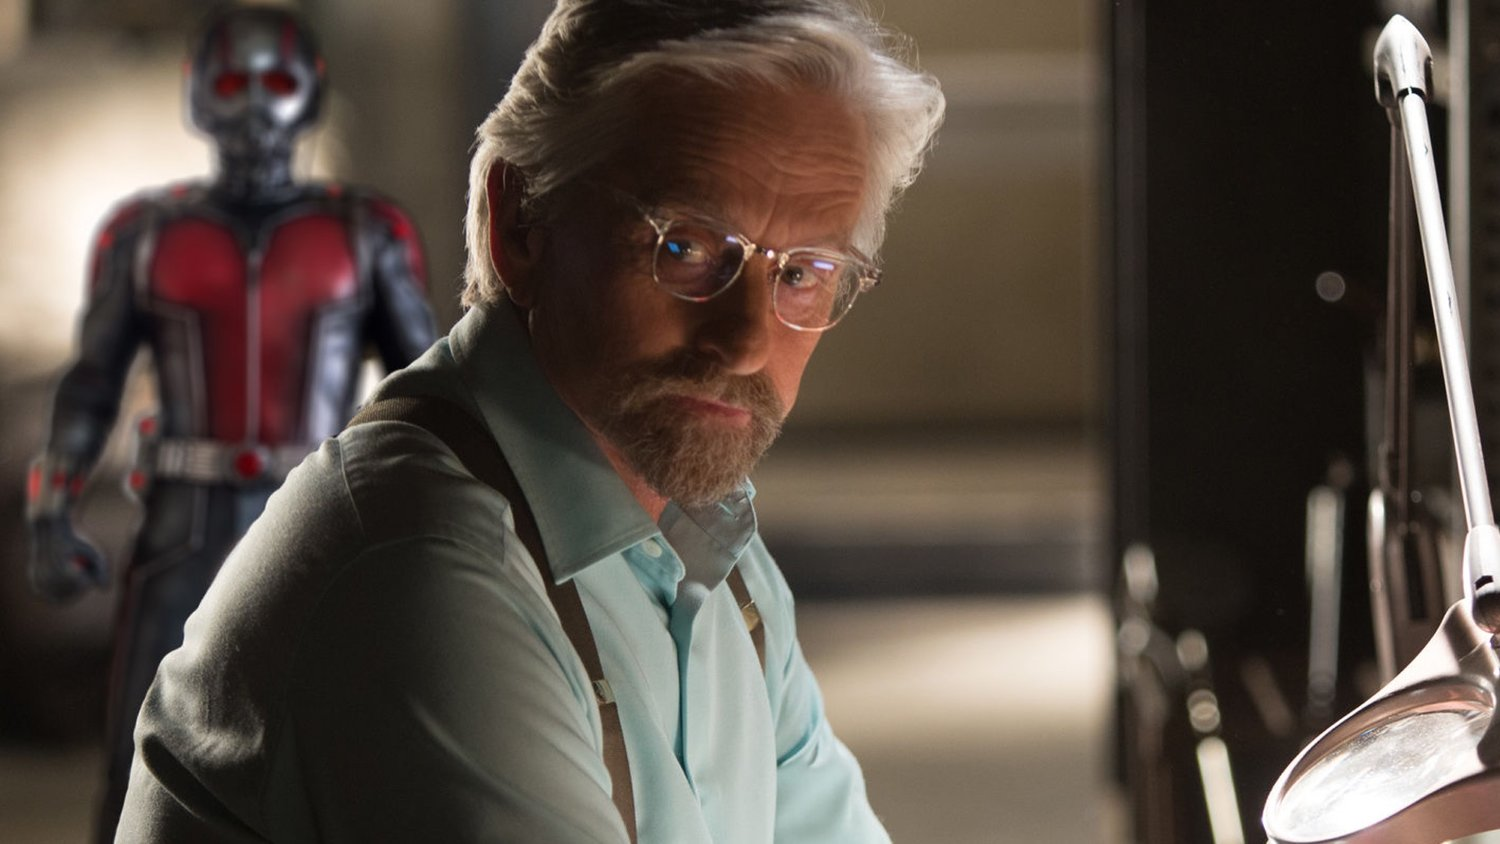 Michael Douglas Confirms He'll Return as Hank Pym in ANT-MAN AND THE WASP